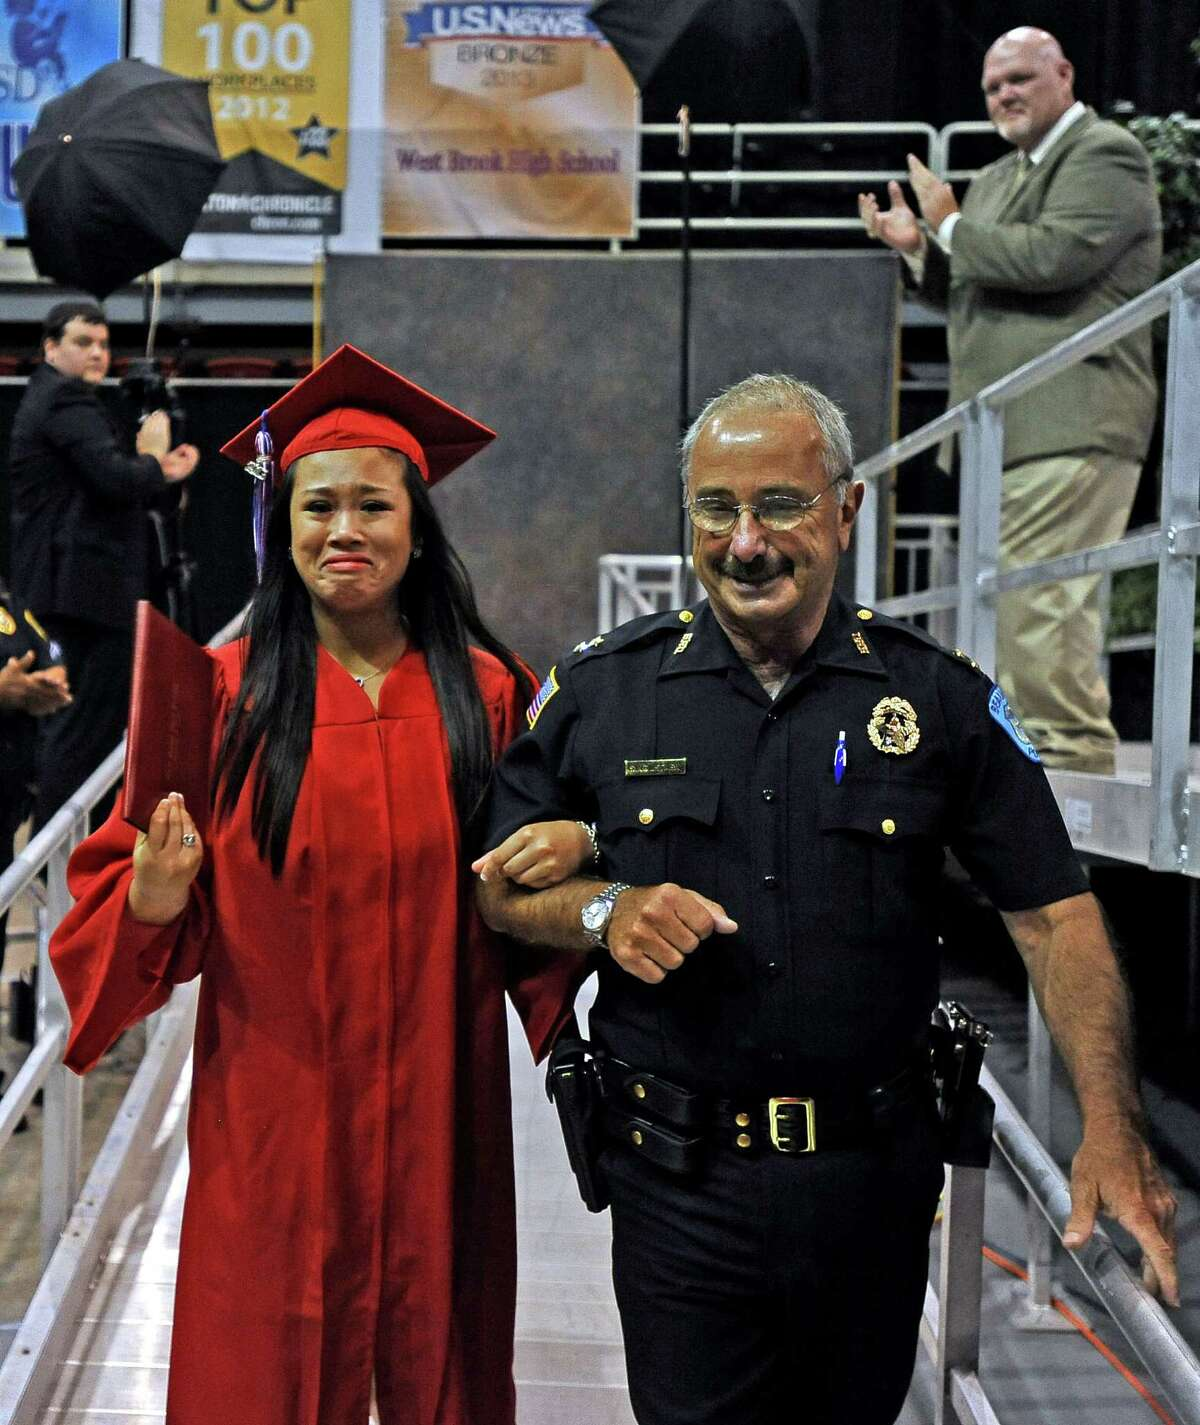 Beaumont ISD West Brook High School Graduation: 10 a.m. June 7 at the Montagne Center (File photo) Celina Grace Fabie Gernale, daughter of Beaumont police officer Conrad Gernale who was killed on duty in 2002, graduated in the West Brook High School class of 2013 on Saturday, June 8, 2013. After receiving her diploma she was escorted by Beaumont Police Chief Jim Singletary off the stage and greeted by numerous other Beaumont police officers. Photo taken: Randy Edwards/The Enterprise